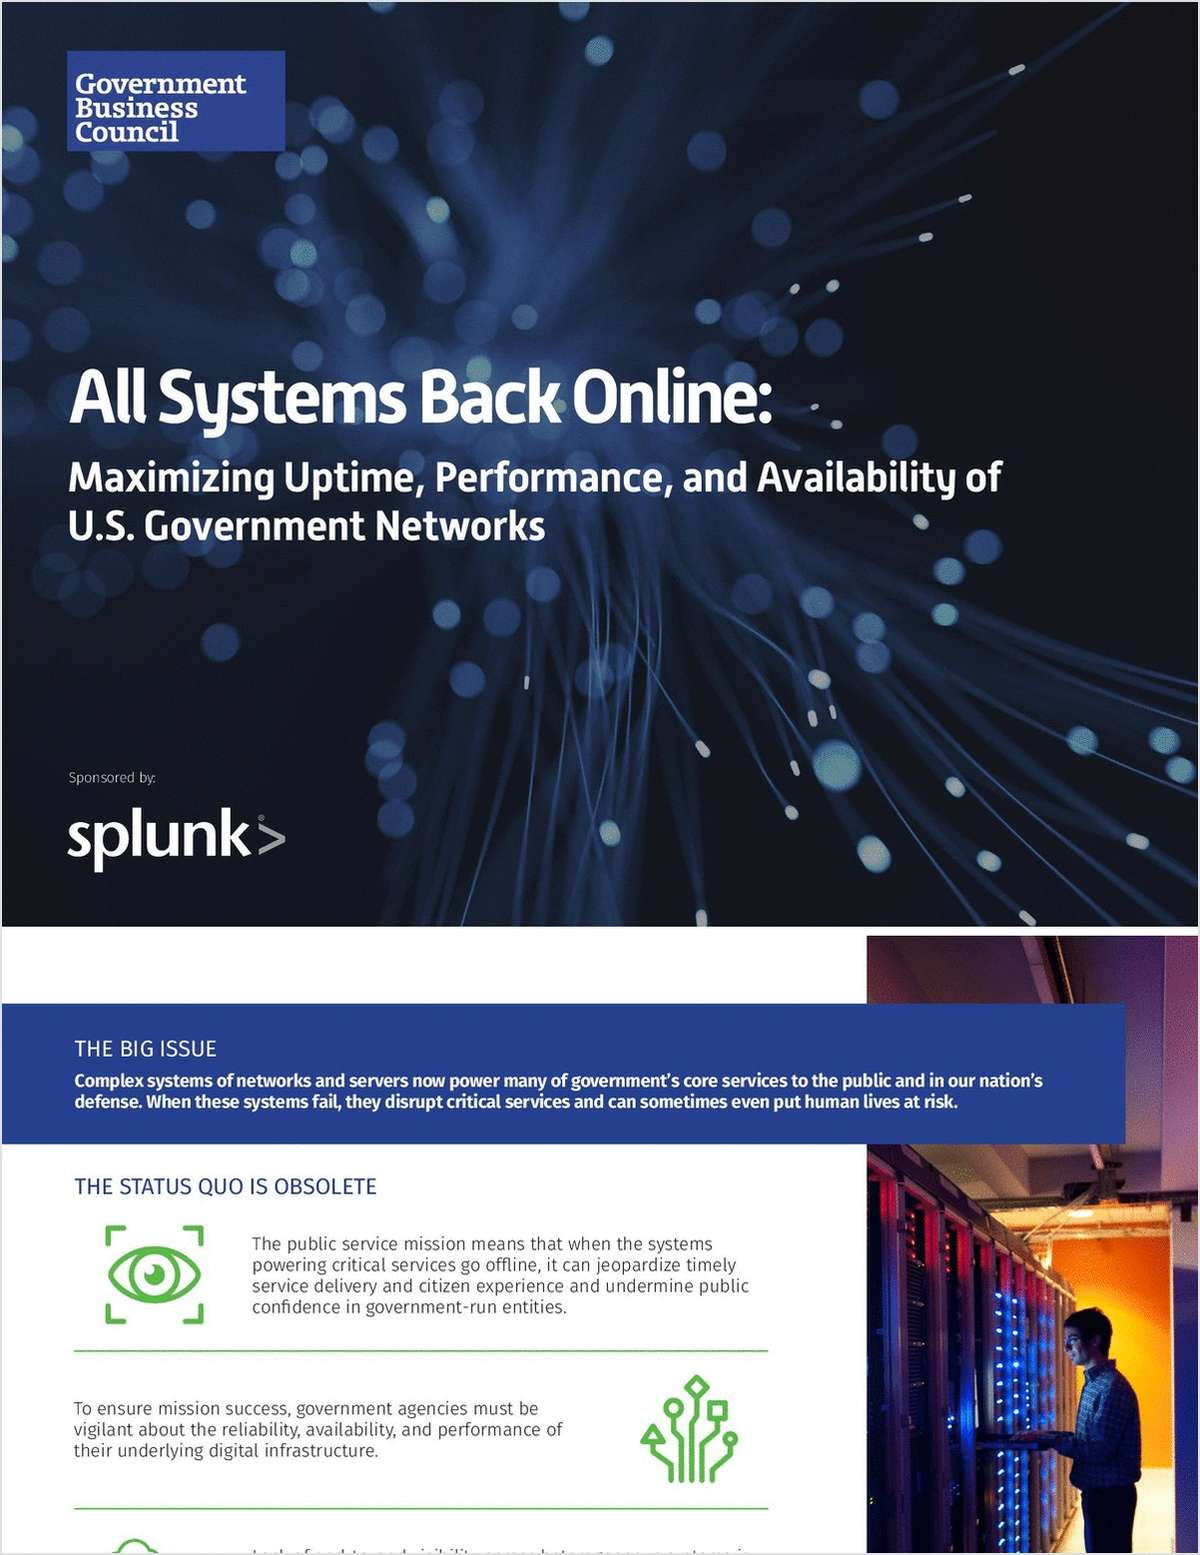 All Systems Back Online: Maximizing Uptime, Performance, and Availability of U.S. Government Networks